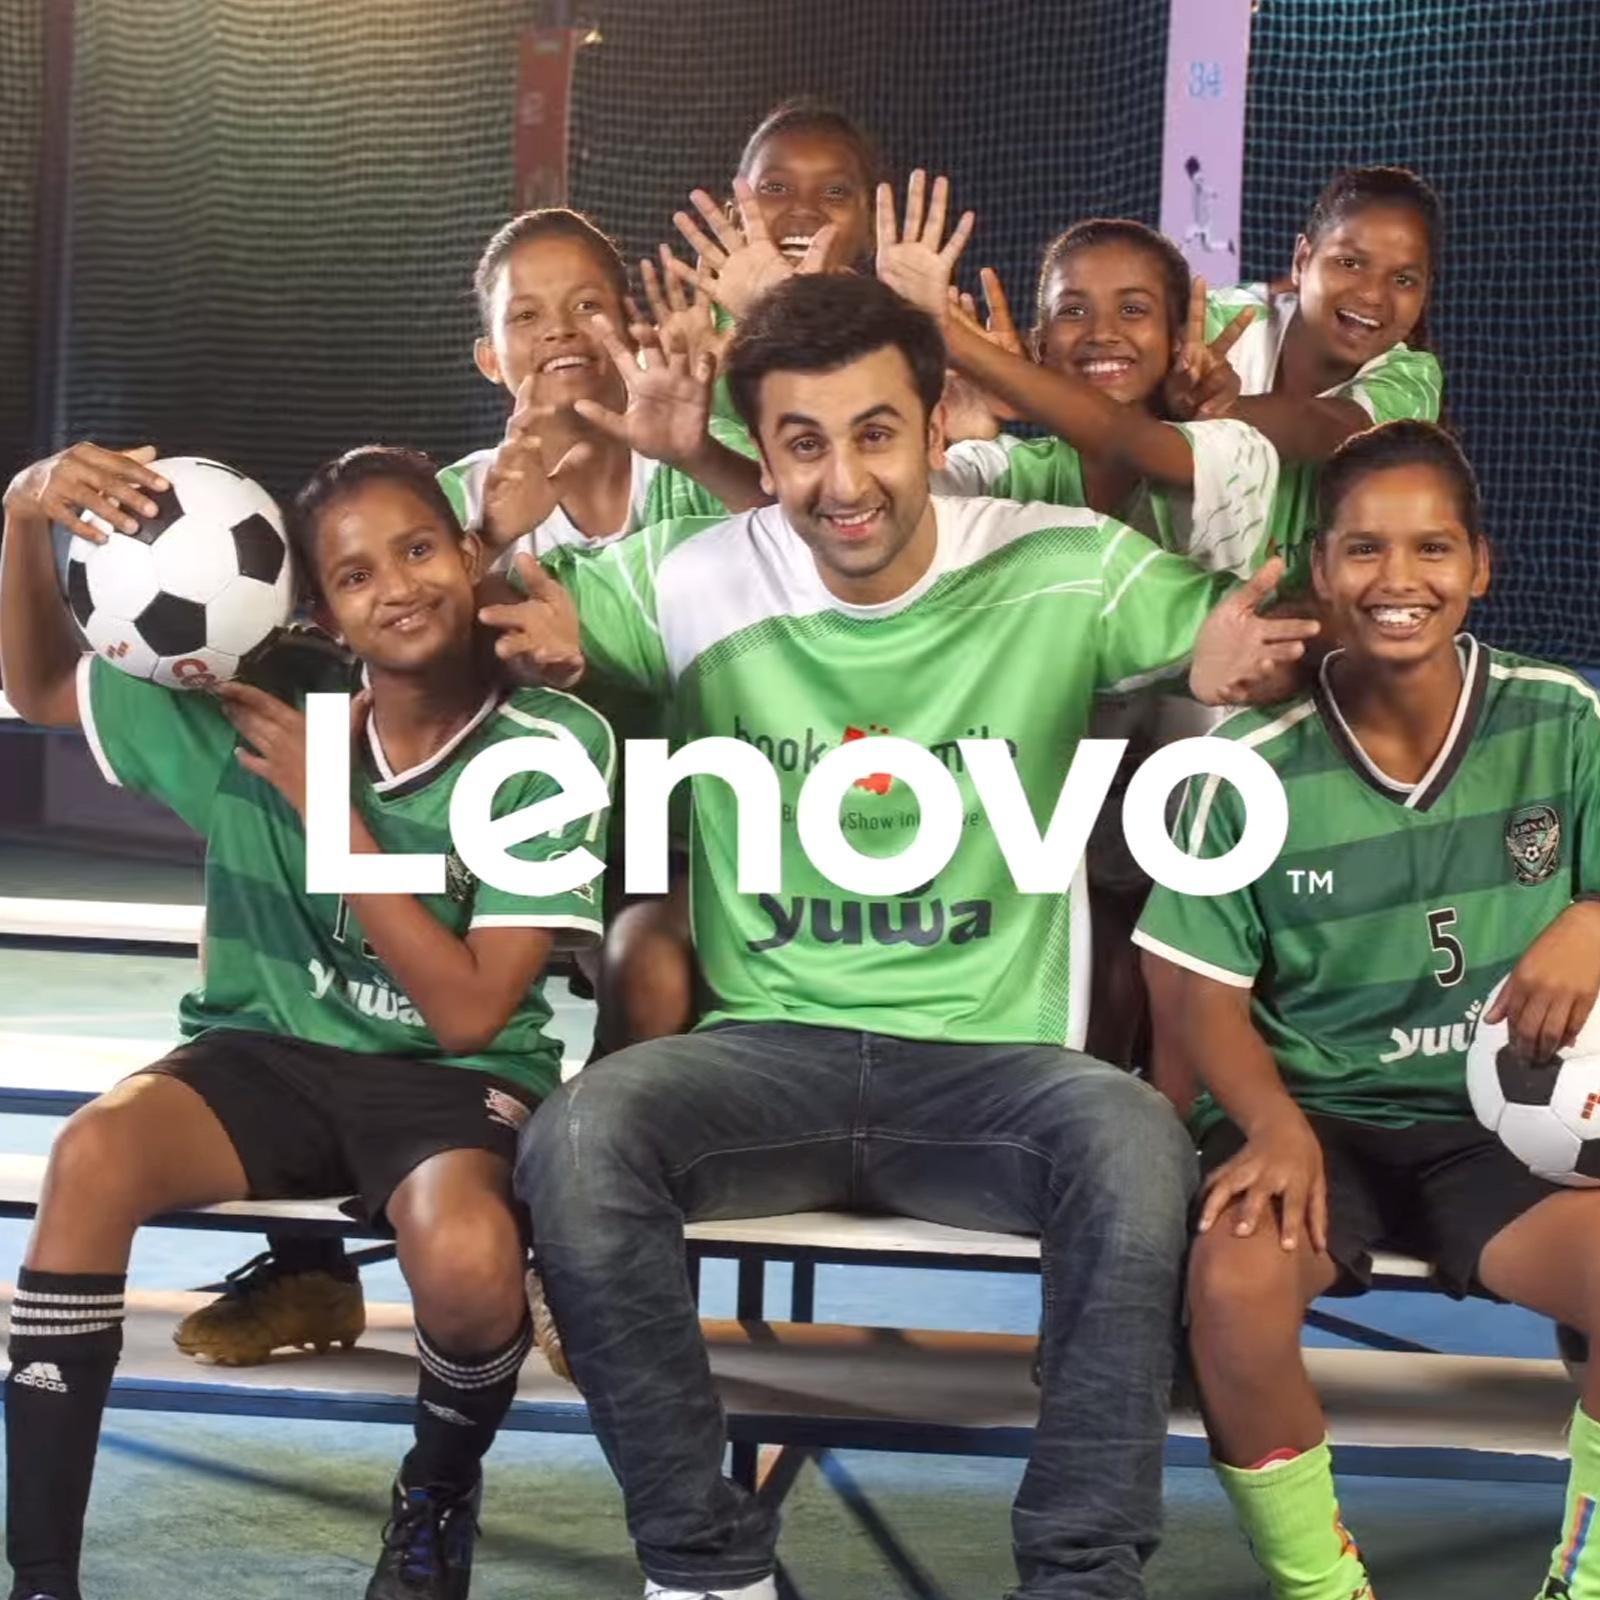 http://www.indiantelevision.com/sites/default/files/styles/smartcrop_800x800/public/images/tv-images/2016/07/20/lenovo%20GirlsWithGoals.jpg?itok=P_EAjI41